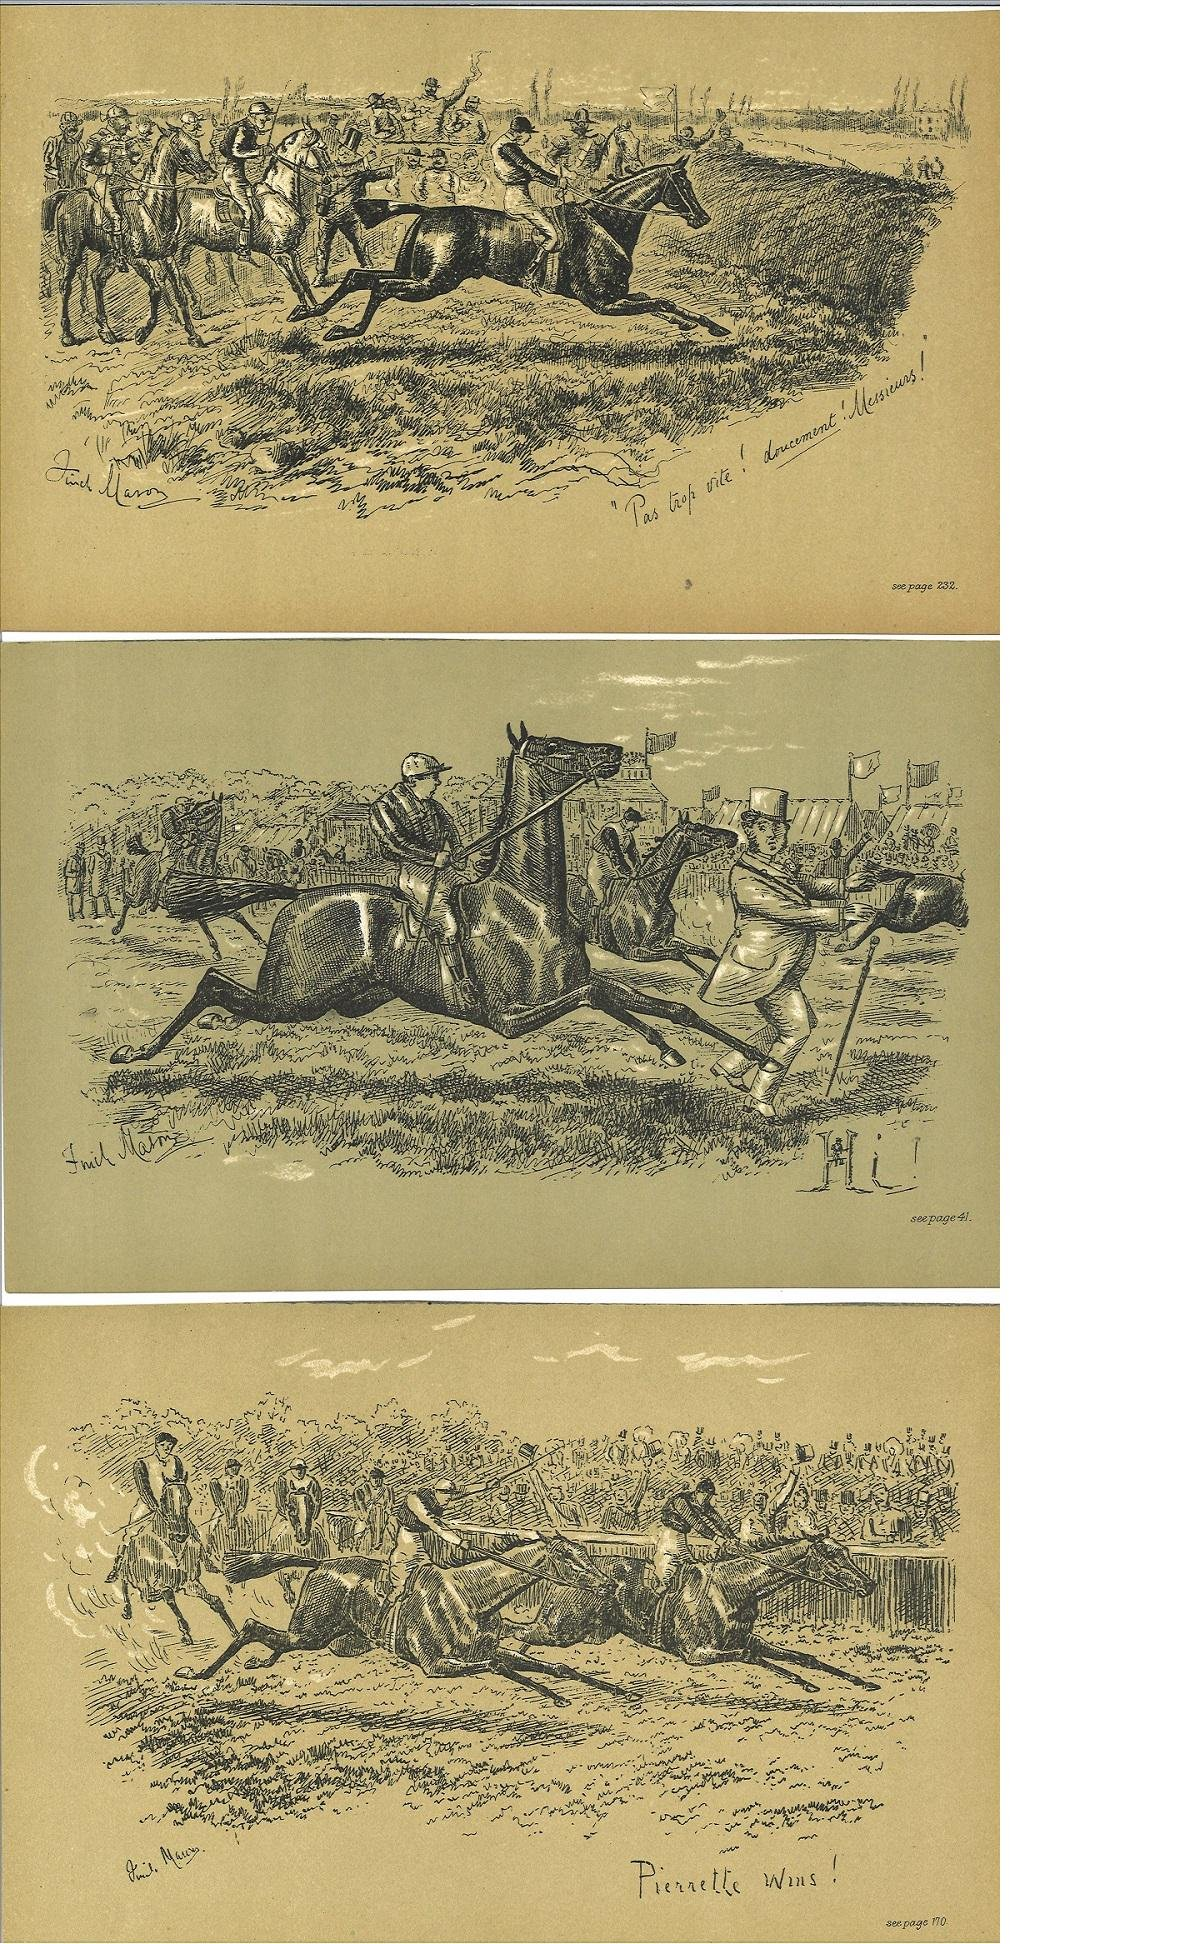 Horse Racing Fires Sporting Sketches collection of